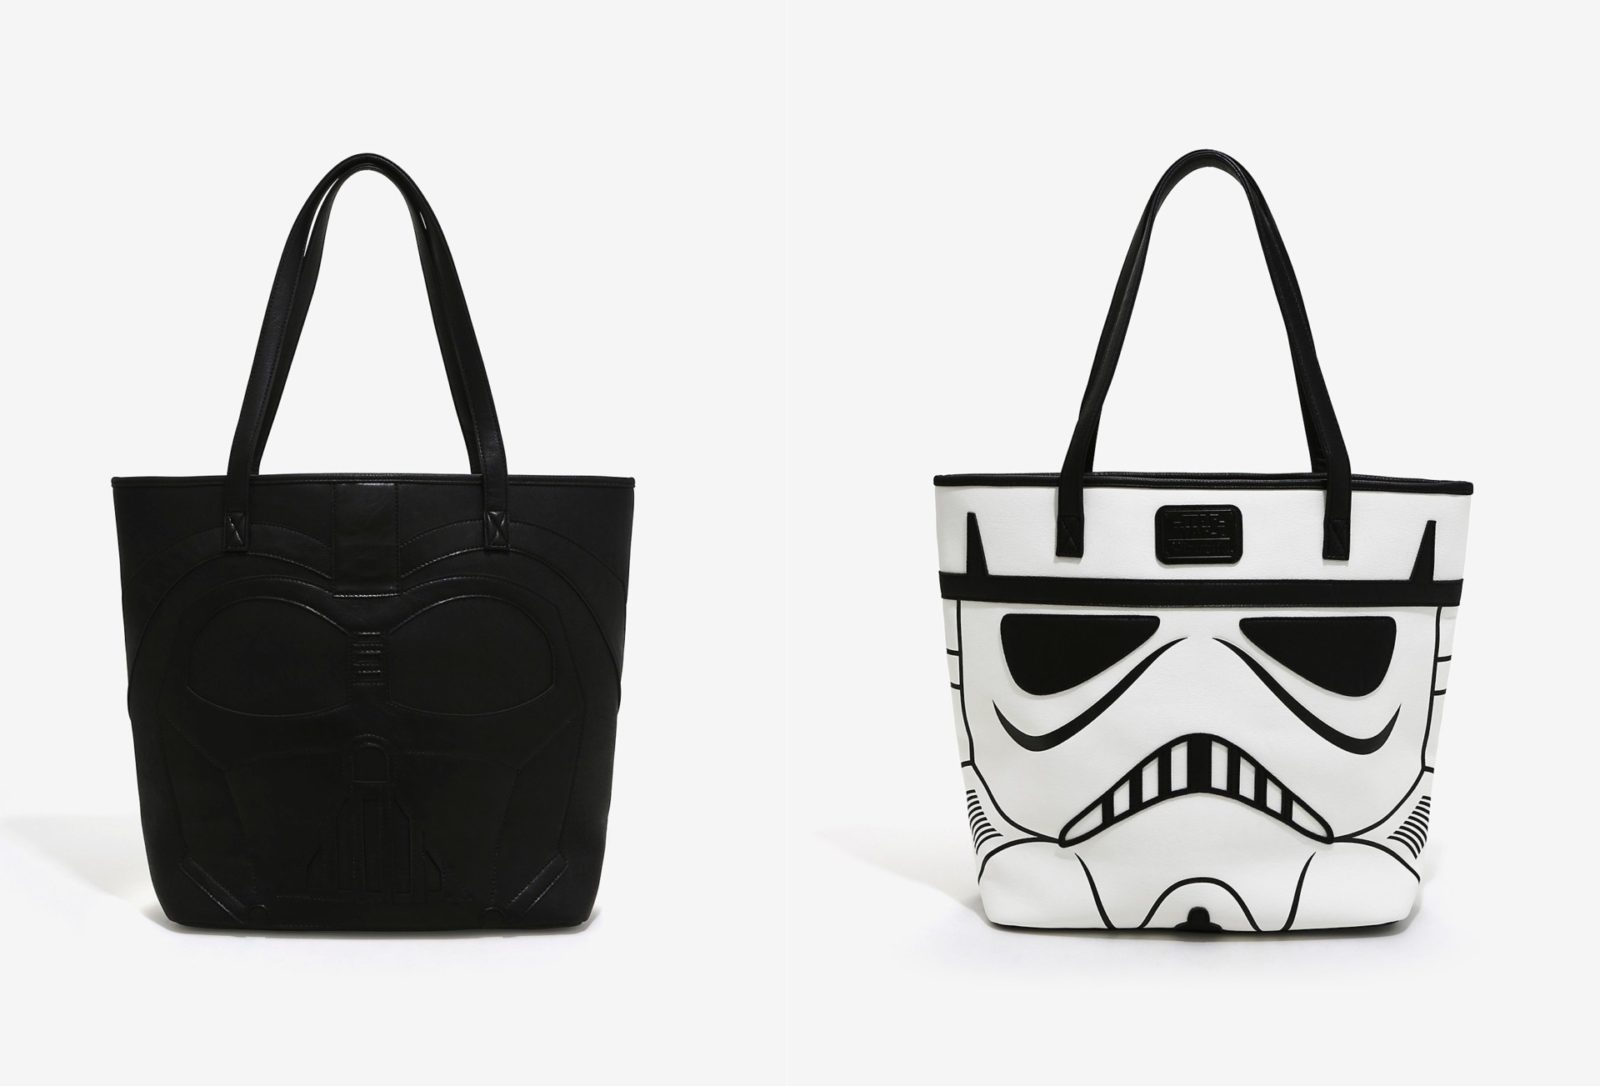 New 2-sided Loungefly x Star Wars tote